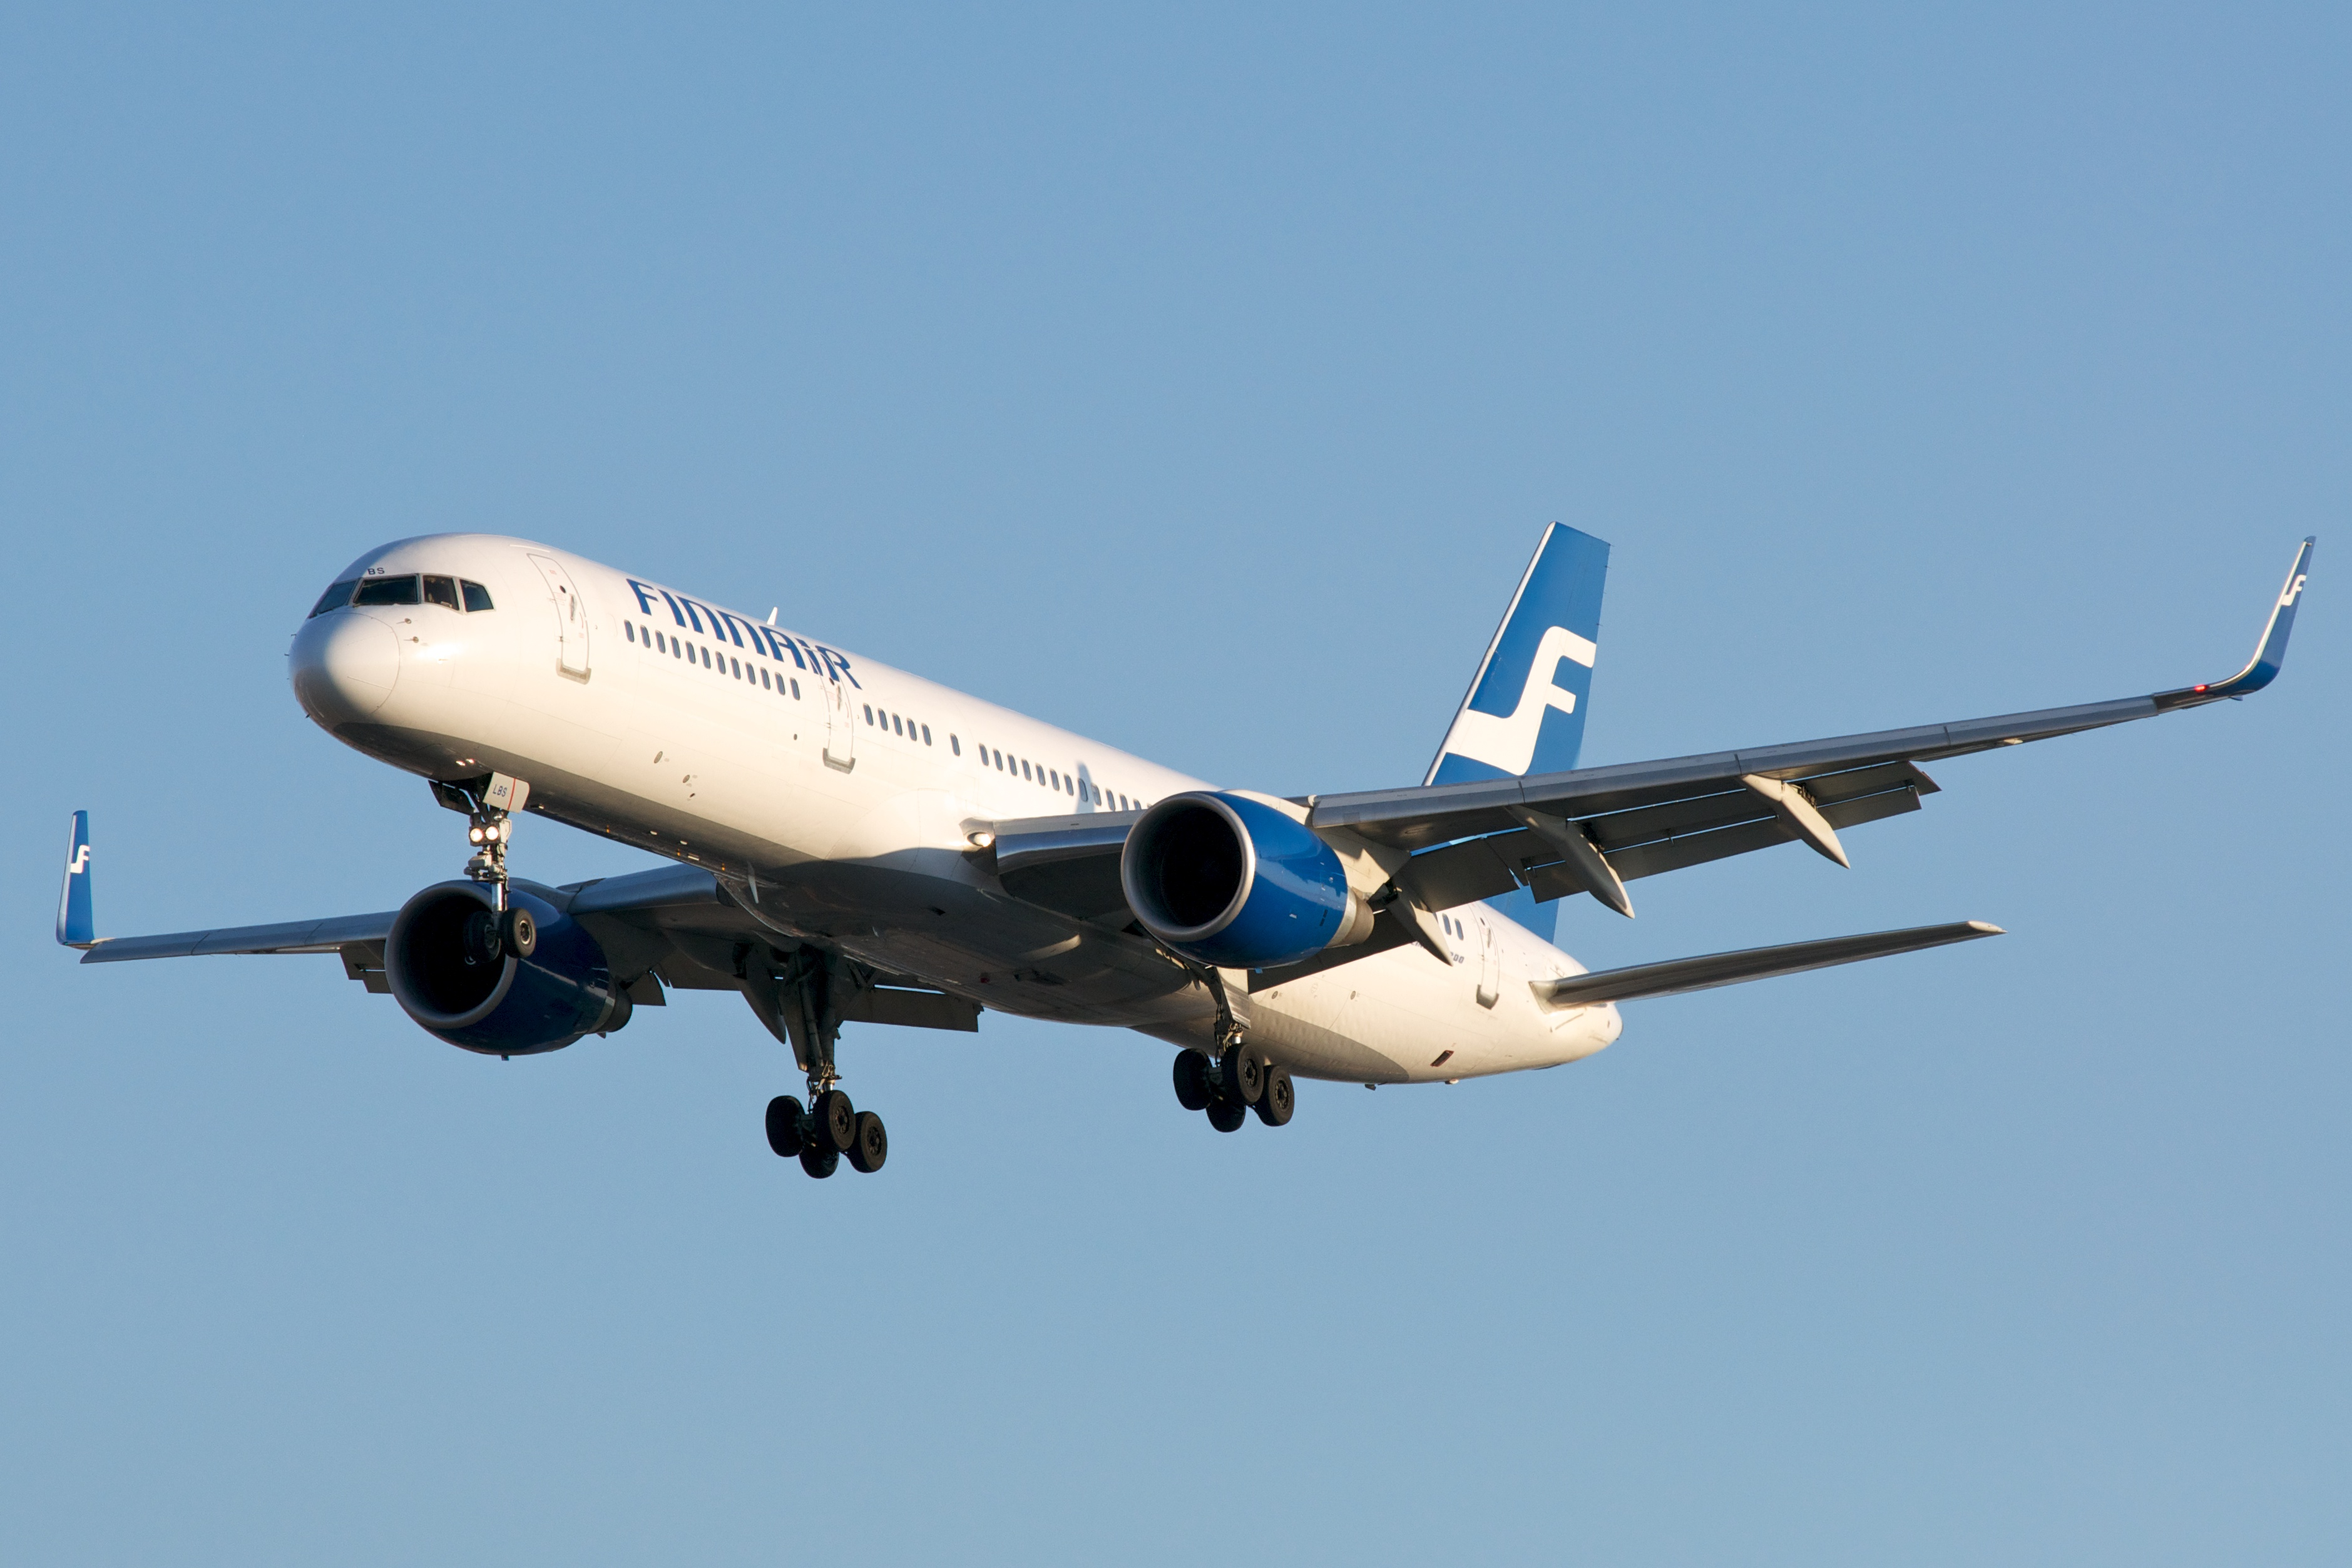 http://upload.wikimedia.org/wikipedia/commons/a/a8/Finnair_B757-200_OH-LBS_at_CYYZ_20110605.jpg